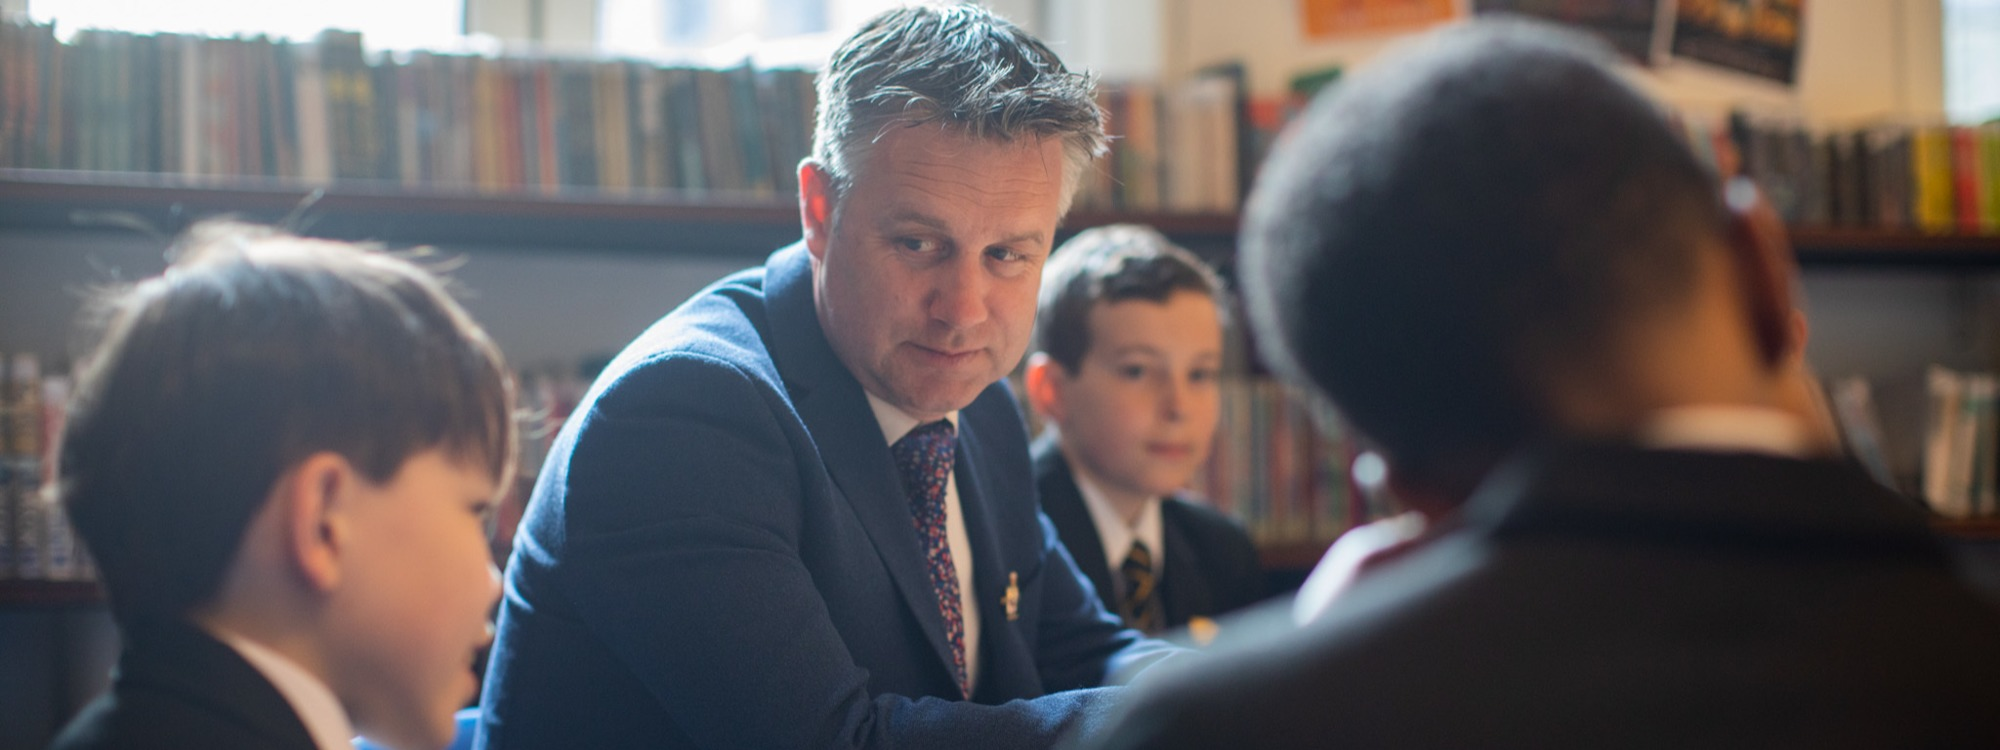 Headteacher with pupils in library